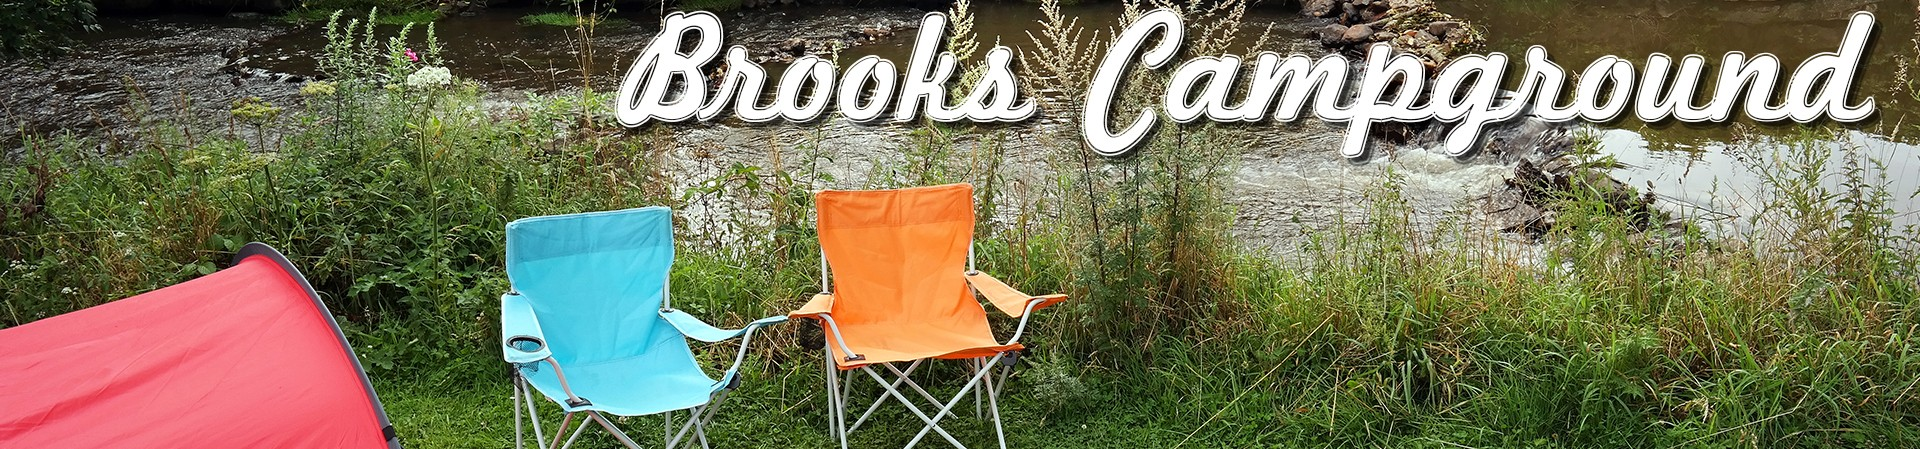 brooks campground